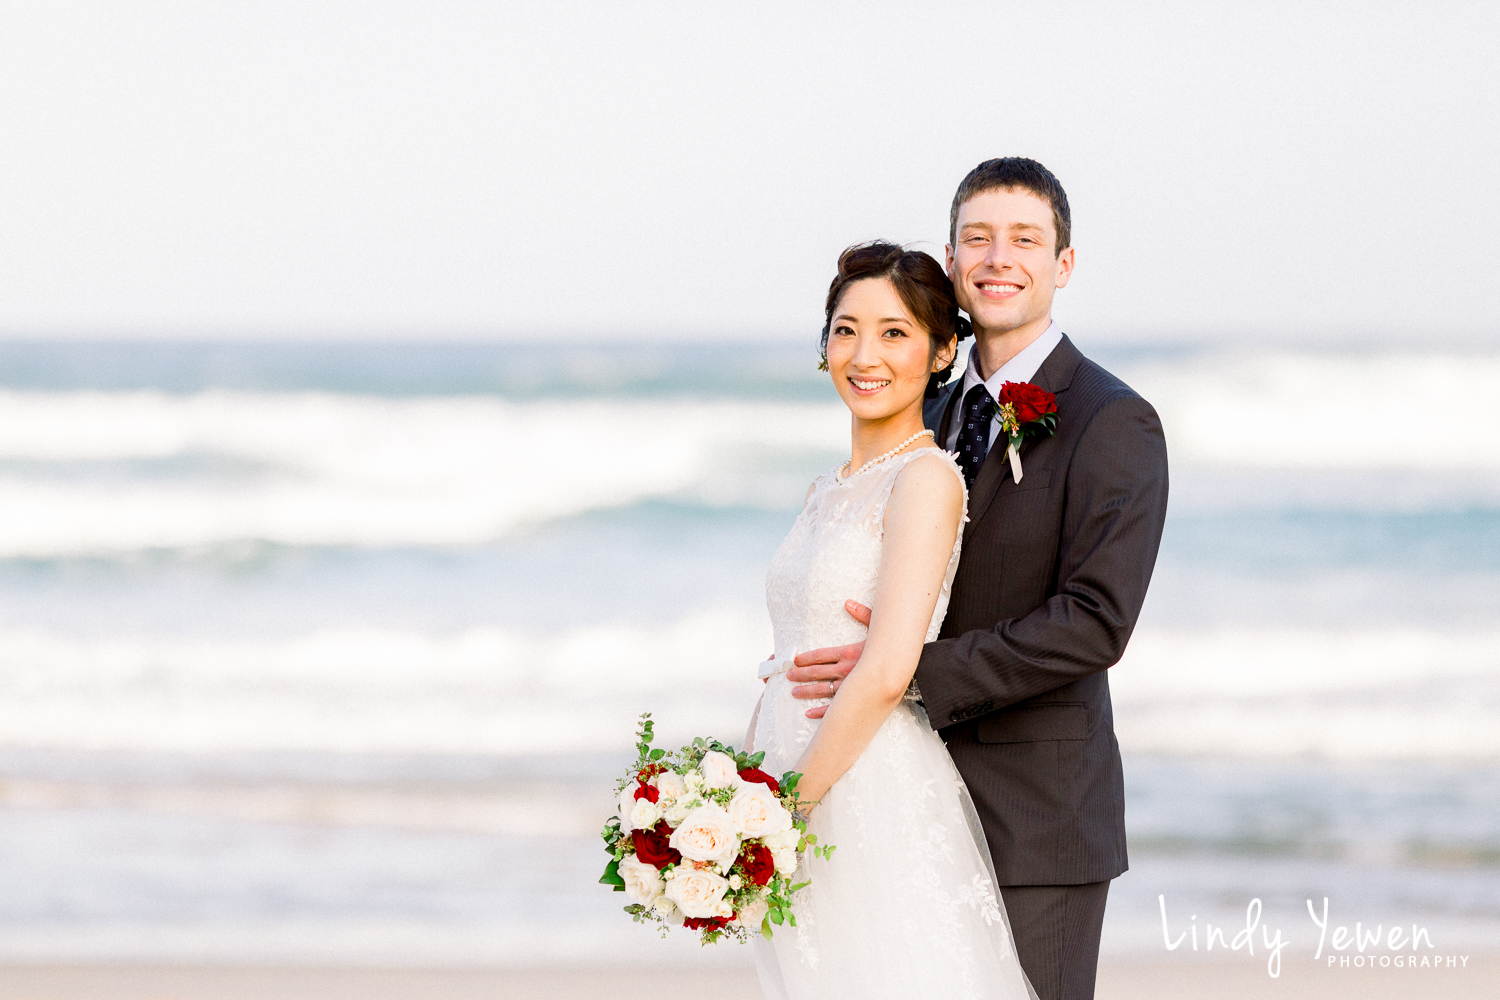 Sunshine-Beach-Weddings-Dimitrije-Maria 131.jpg